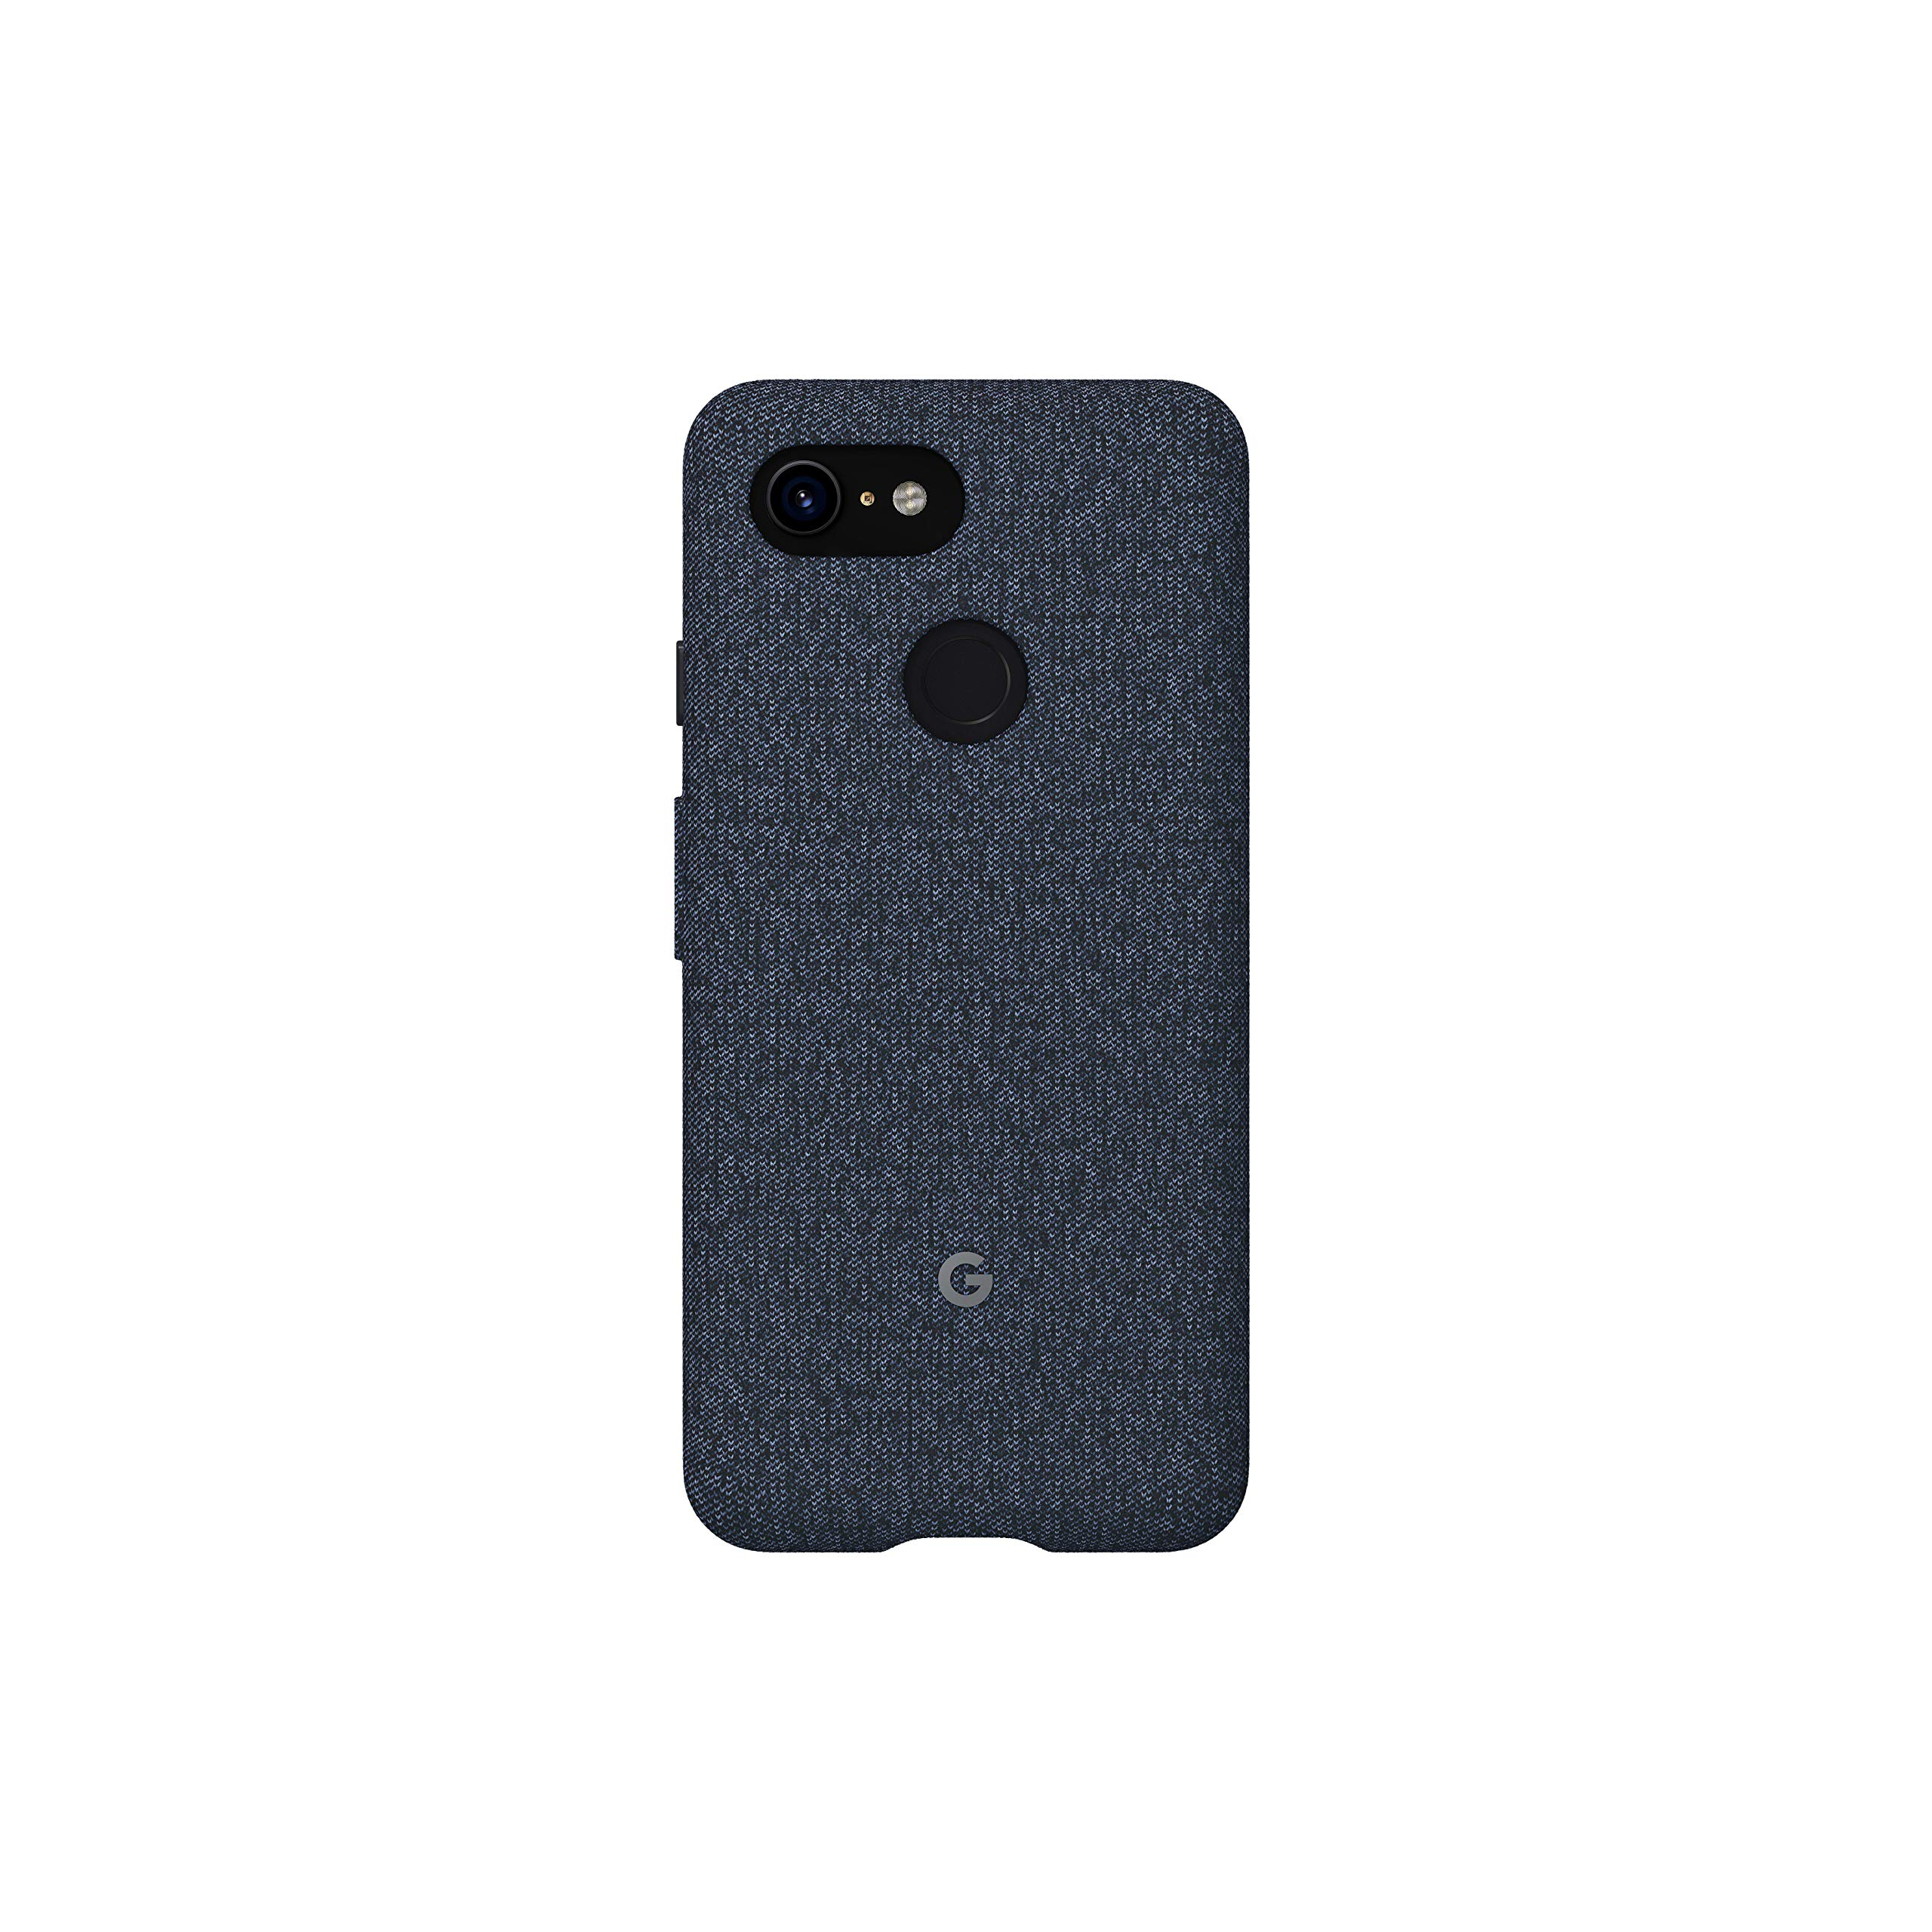 Google Fabric Case Cell Phone Case for Pixel 3 - Indigo Fabric